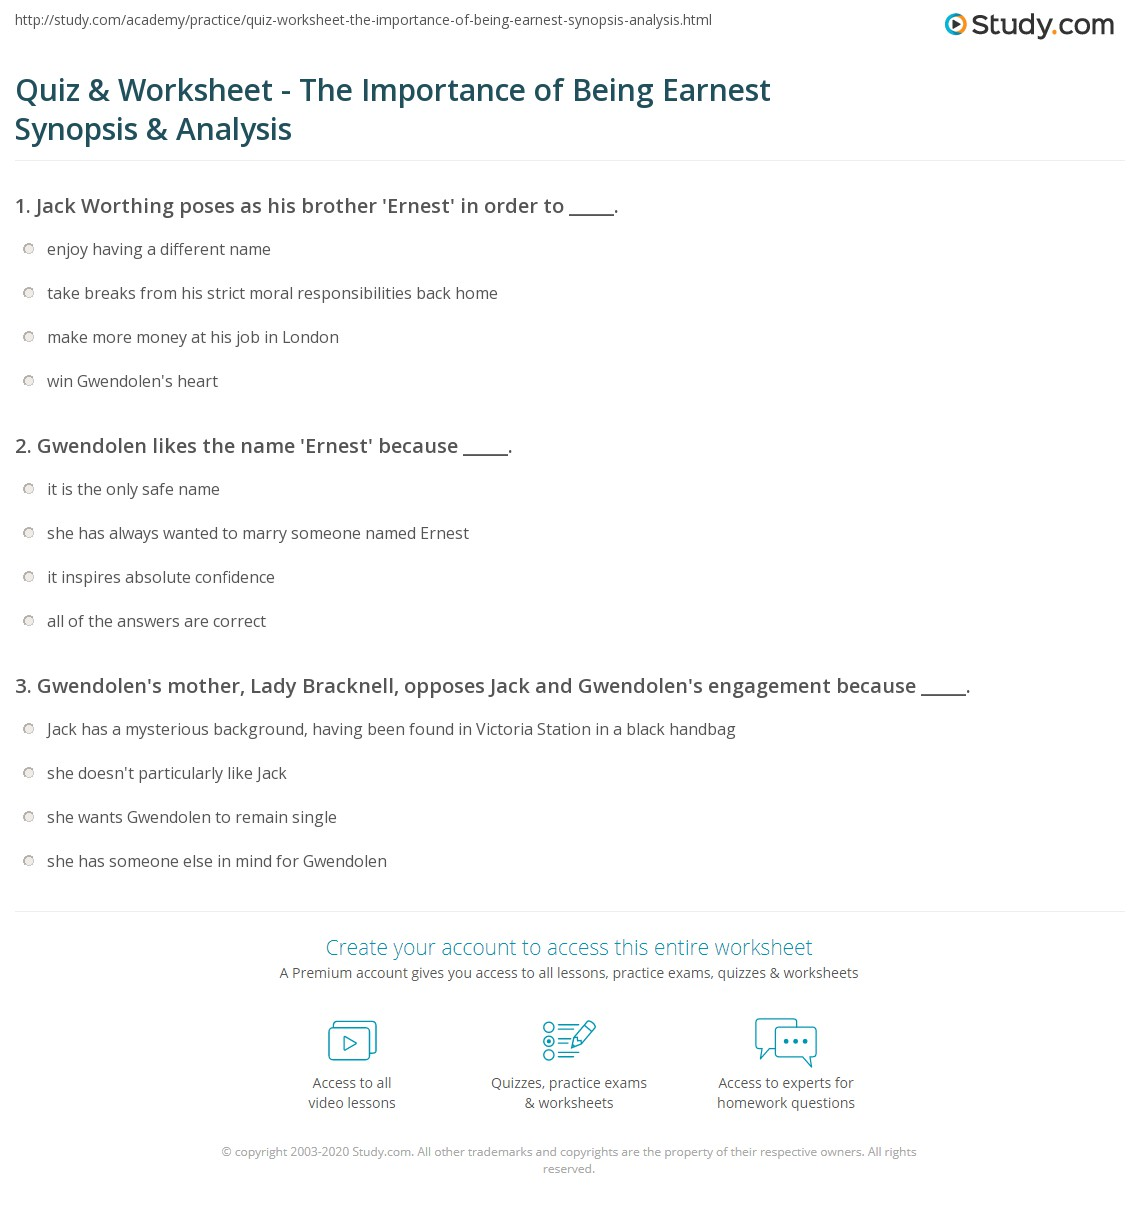 Country Miles Commonlit Answers Quizlet - Daulat Farms ...